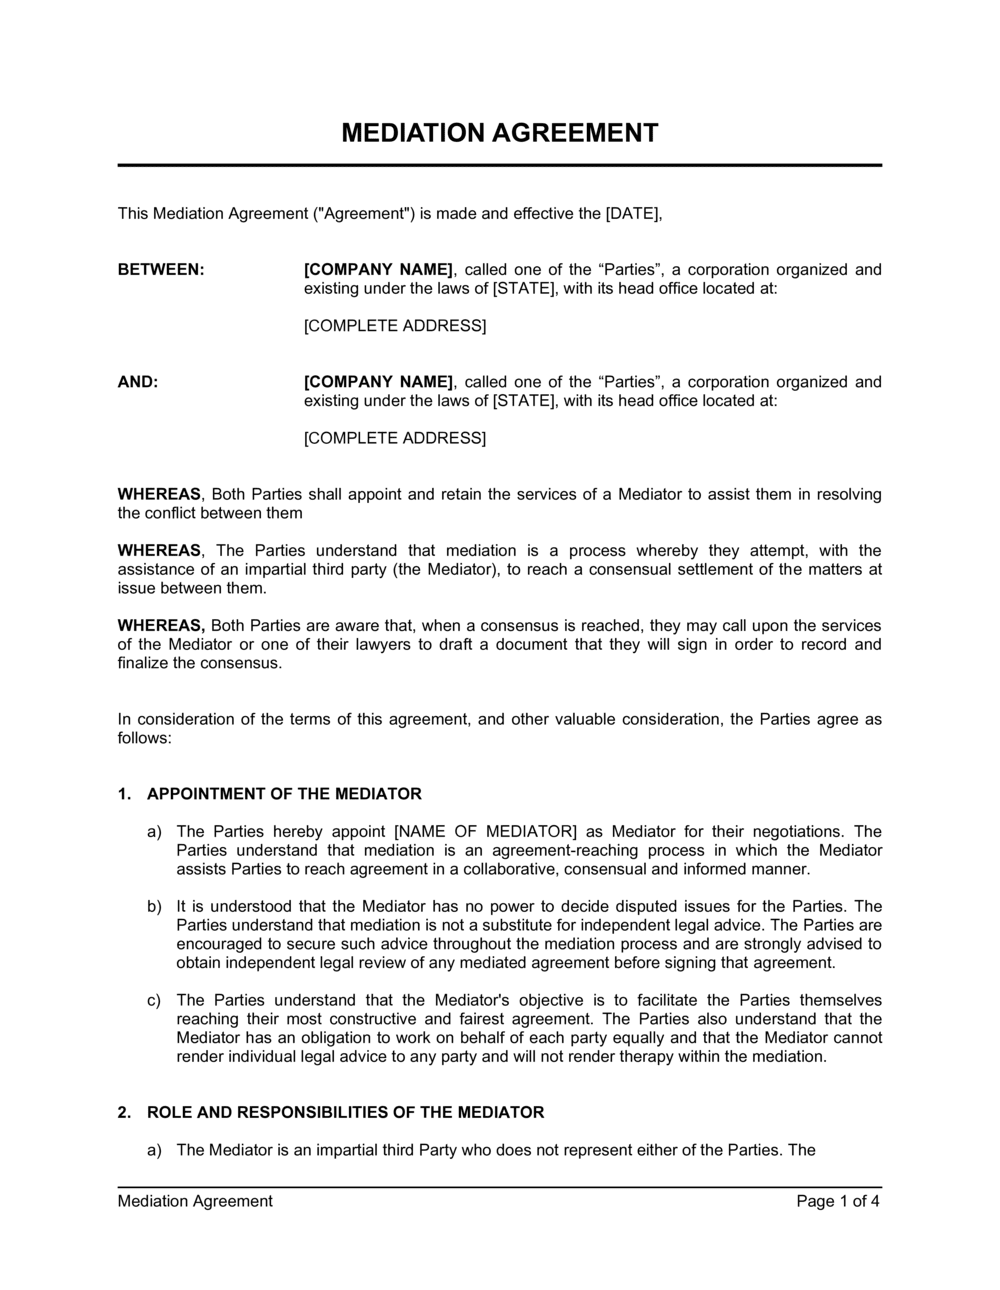 Business-in-a-Box's Mediation Agreement Template